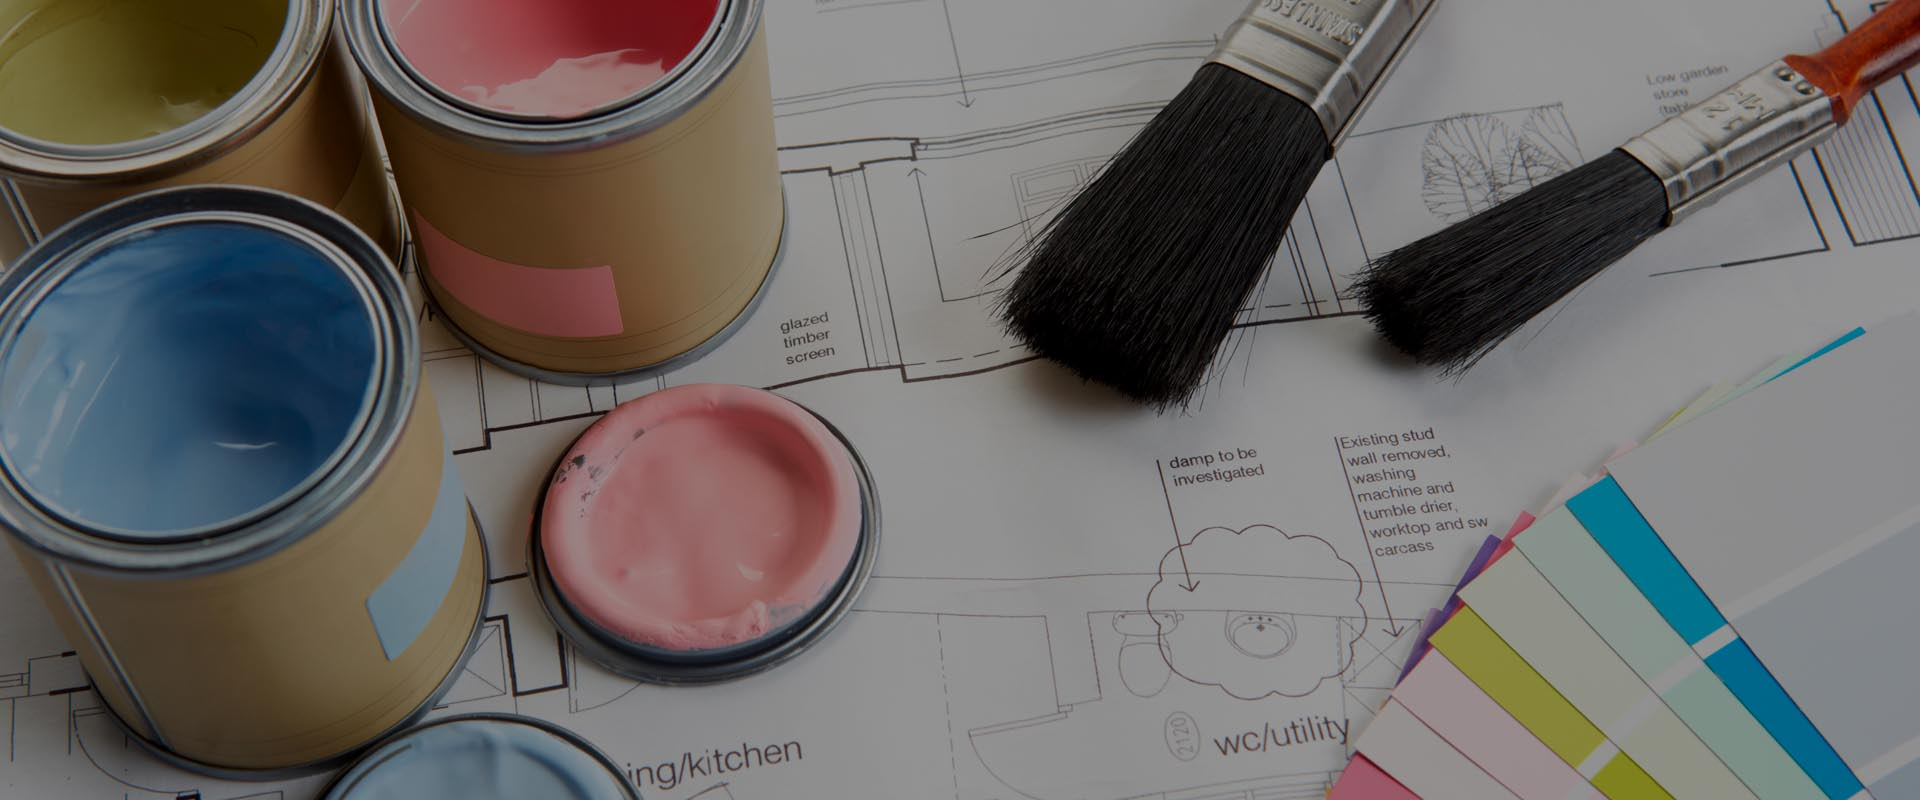 paint brushes and opened paint containers